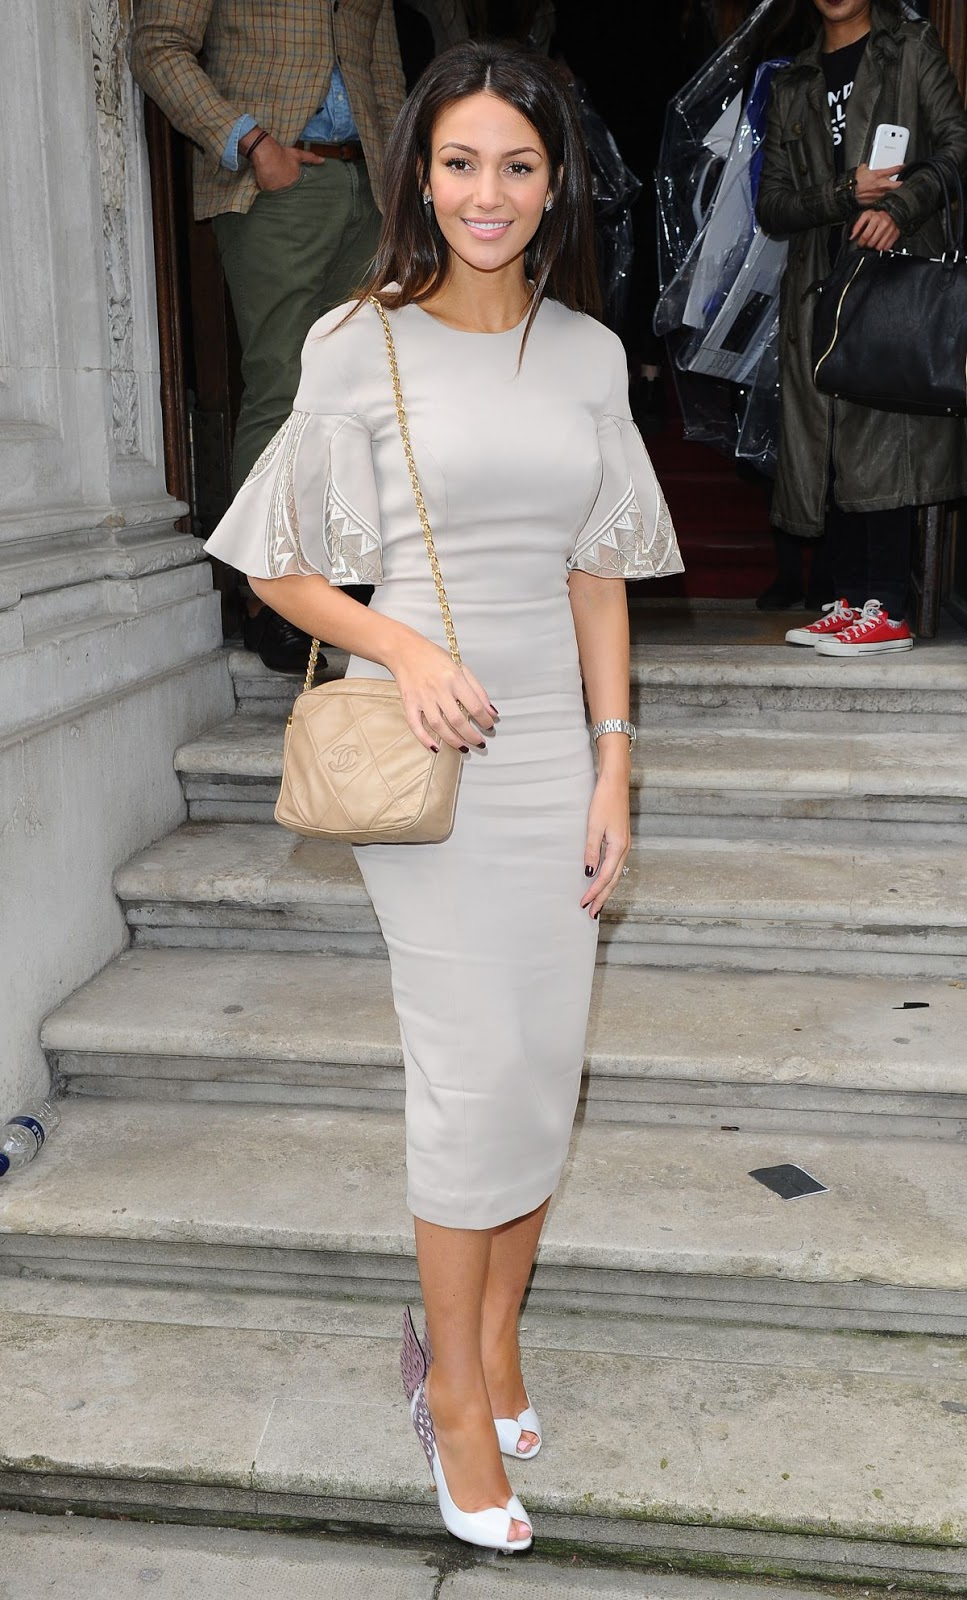 HD Photos of Michelle Keegan At Julien Macdonald Fashion Show In London